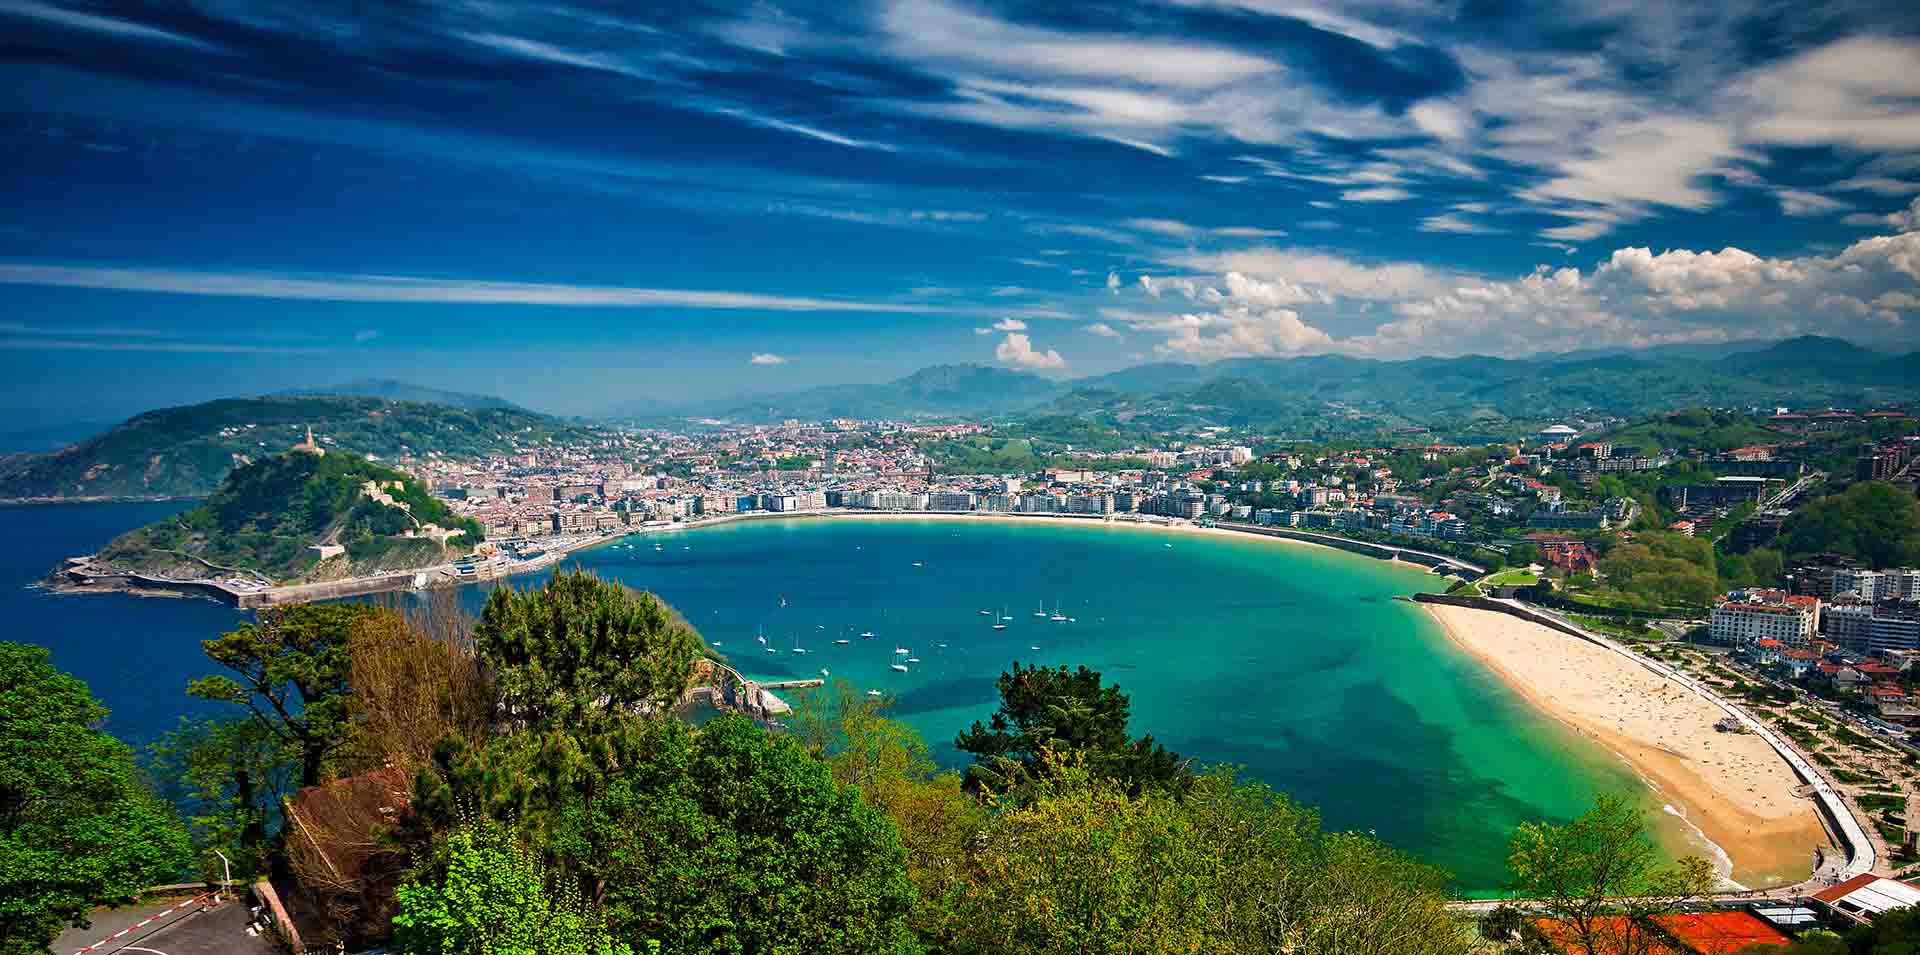 View from Mountain of San Sebastian, Spain